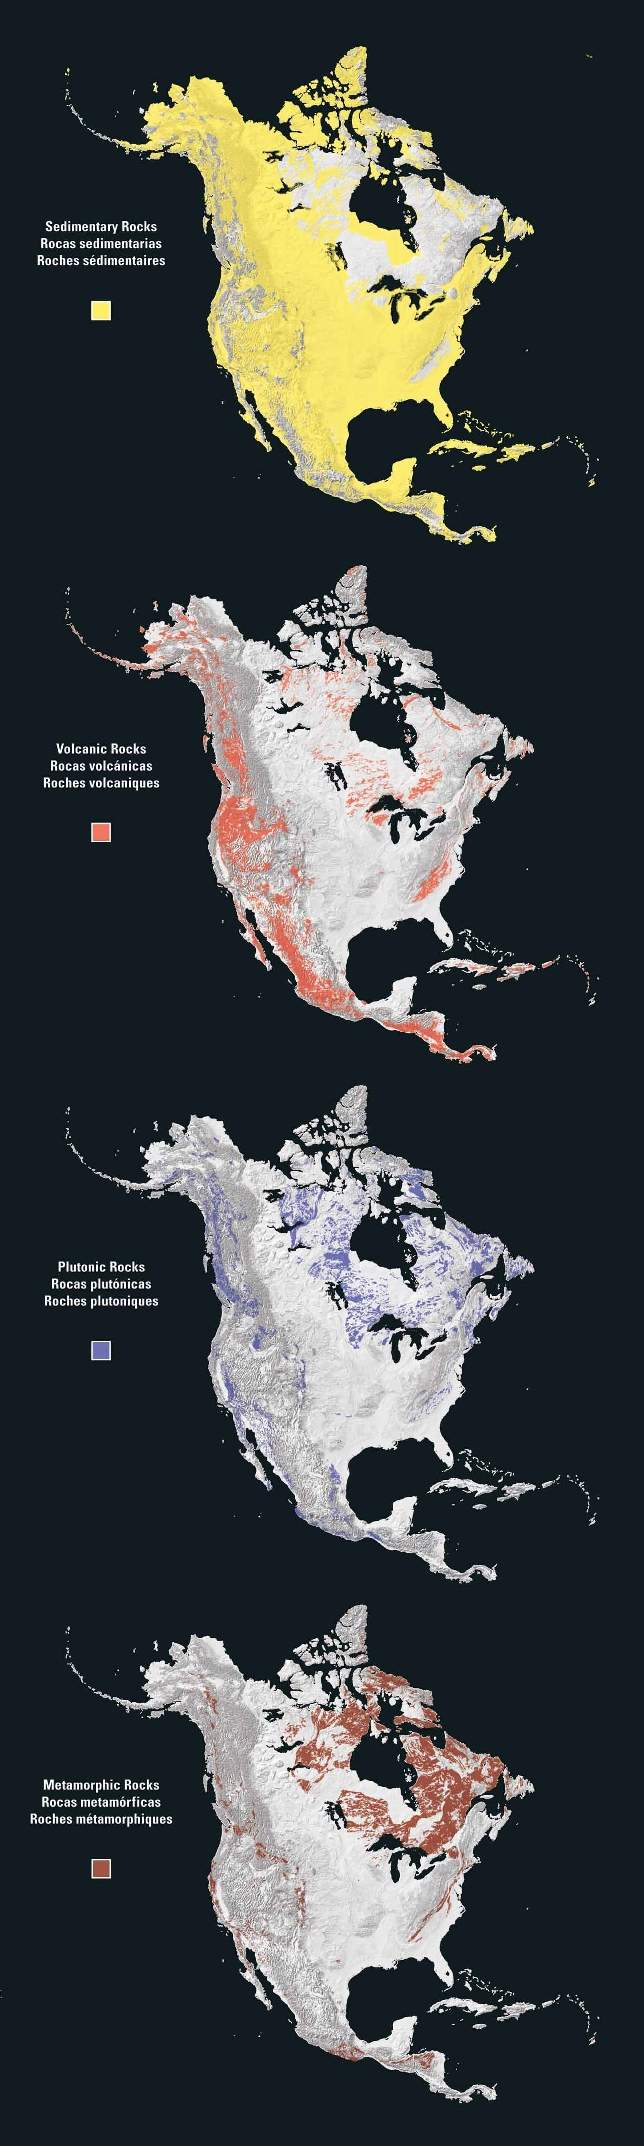 North America Rock Types large map